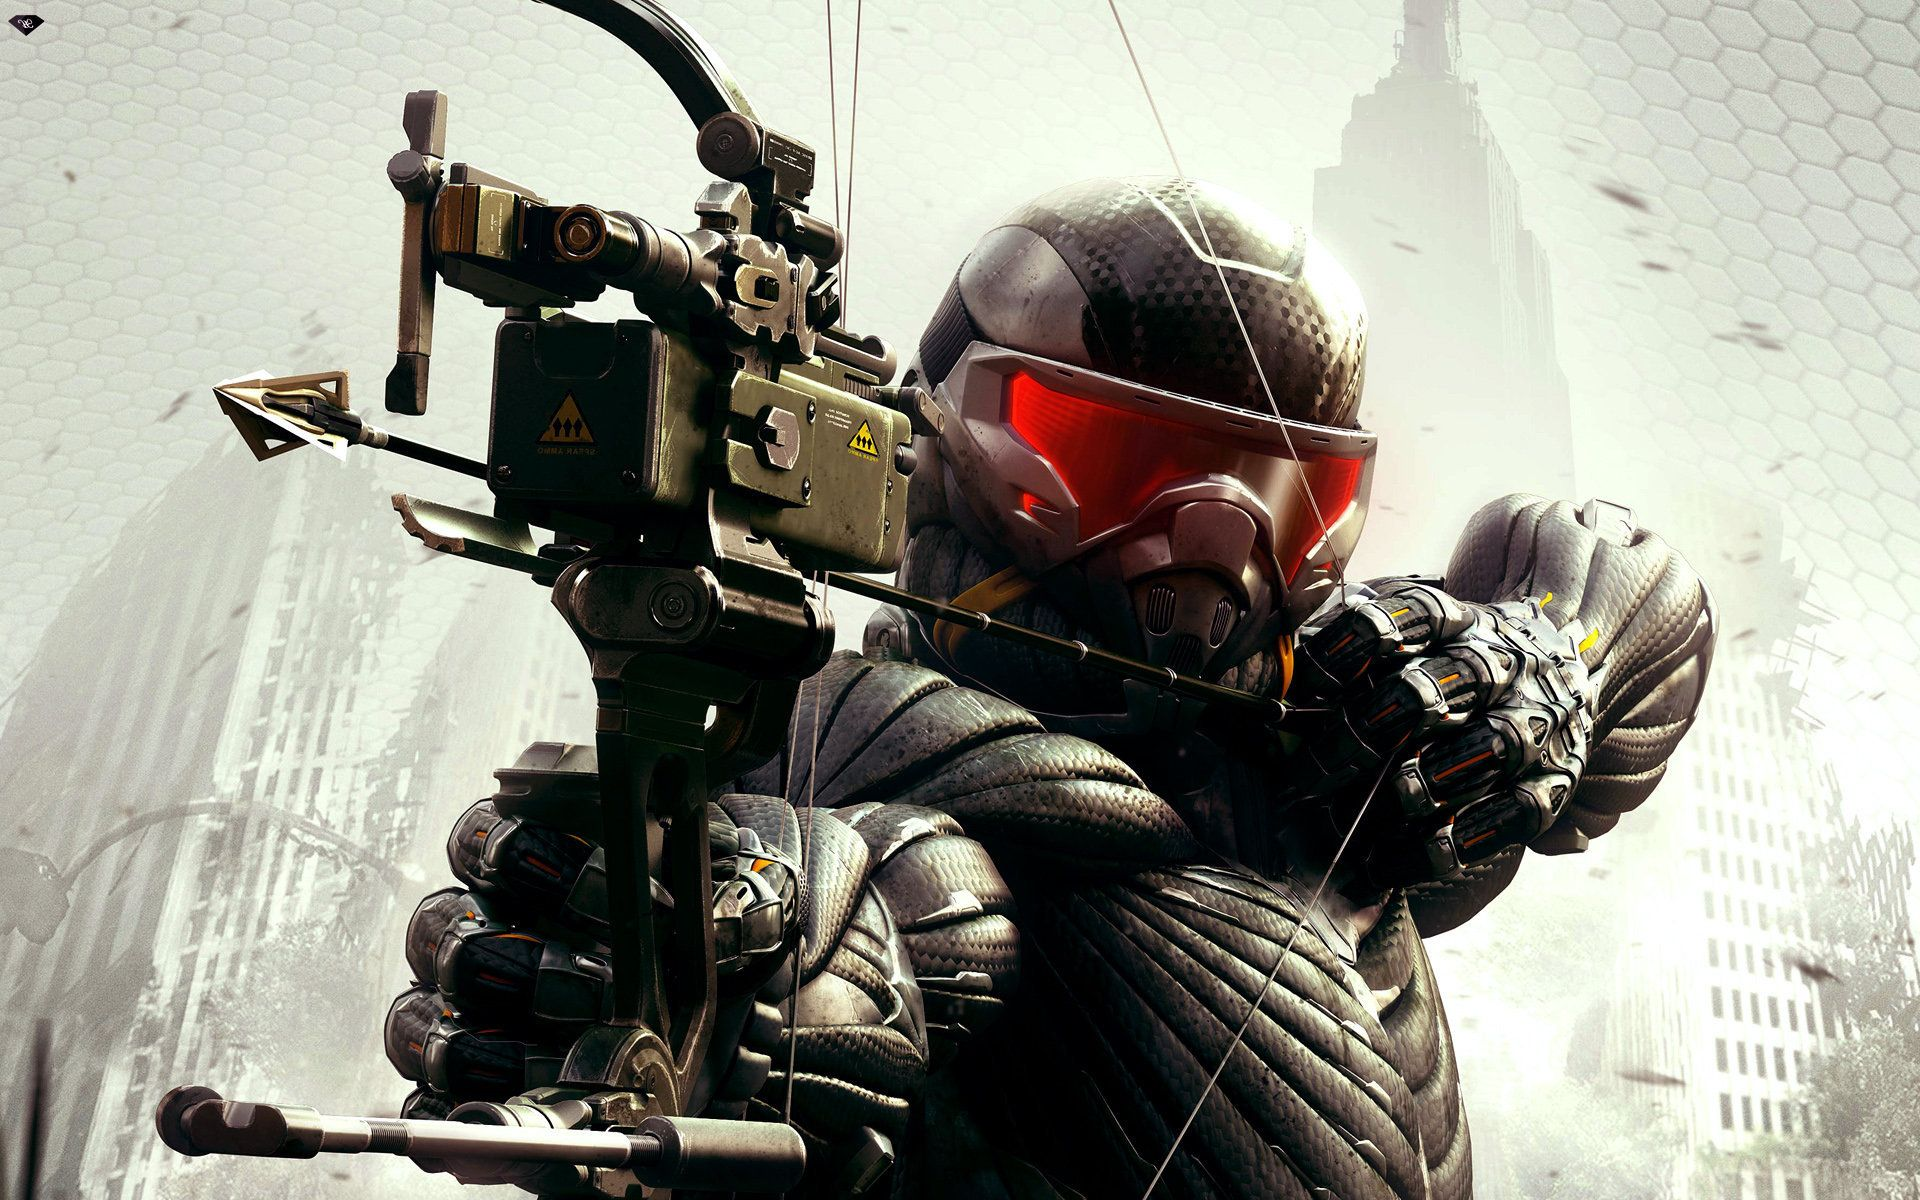 Download Crysis 3 Backgrounds For Free Wallpaper Monodomo Wallpaper Hd Wallpaper Wallpaper Backgrounds